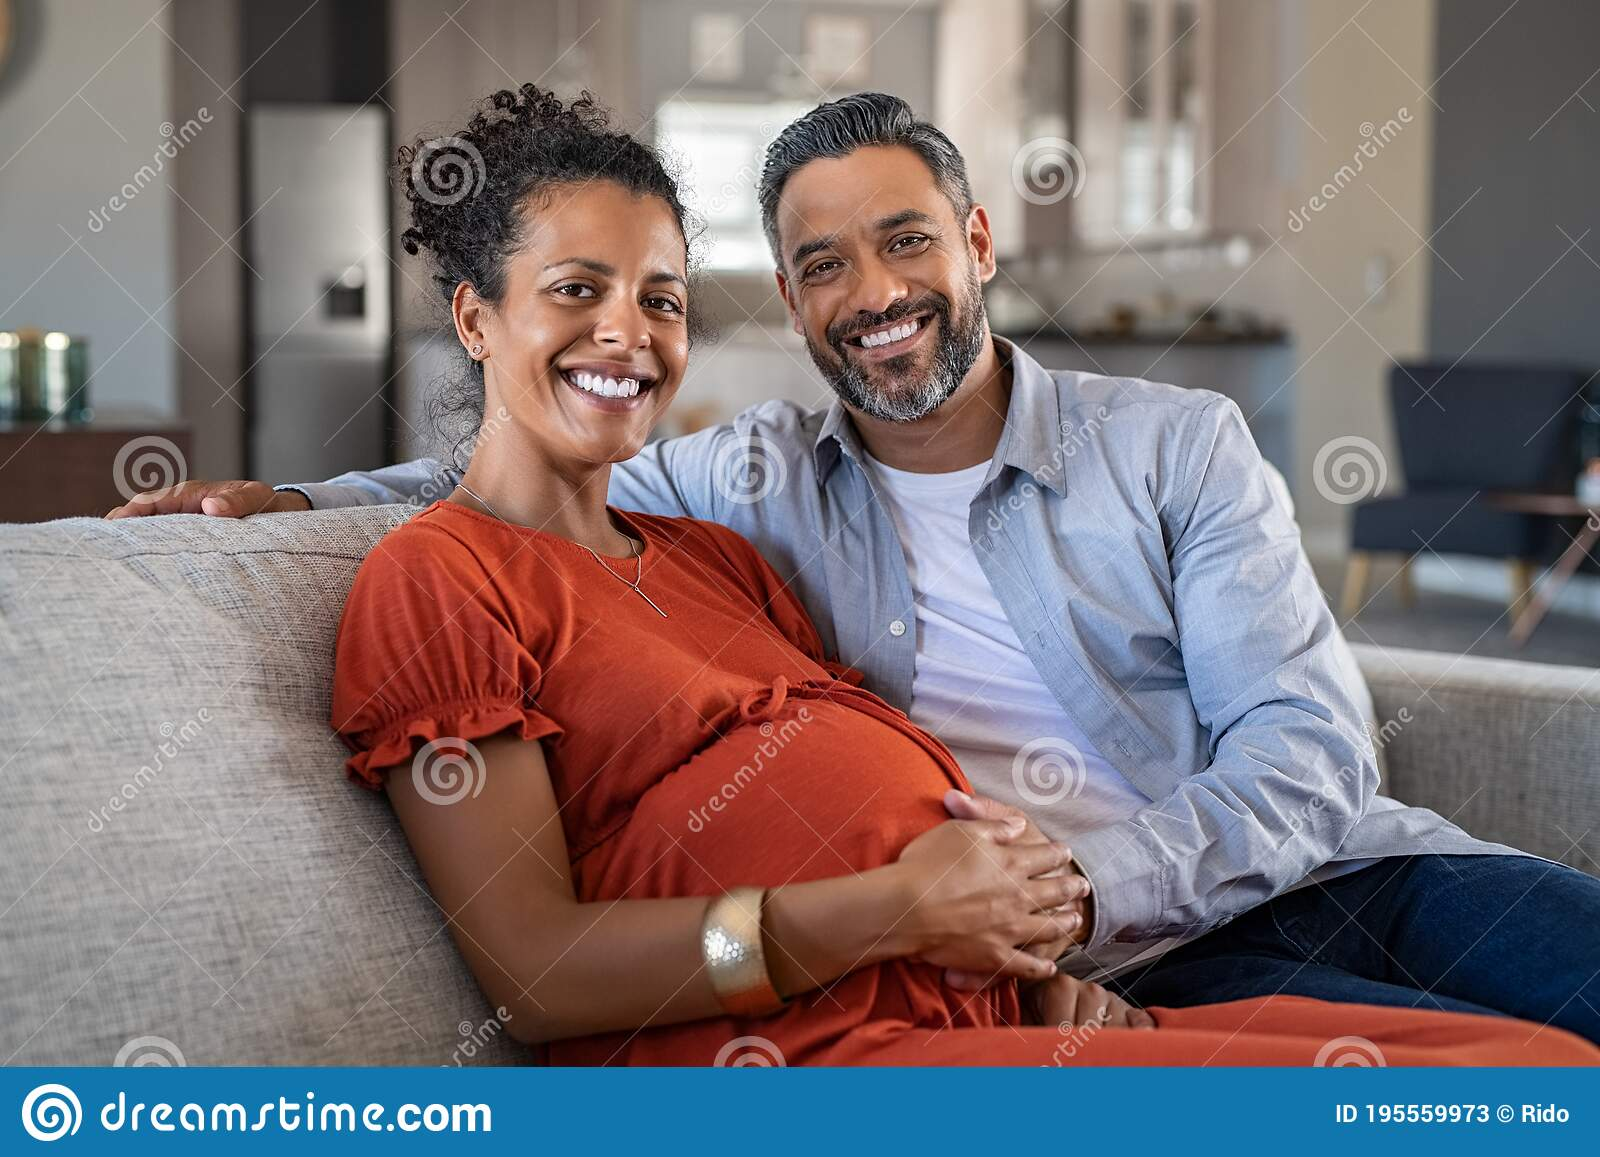 Wife pregnant by black man